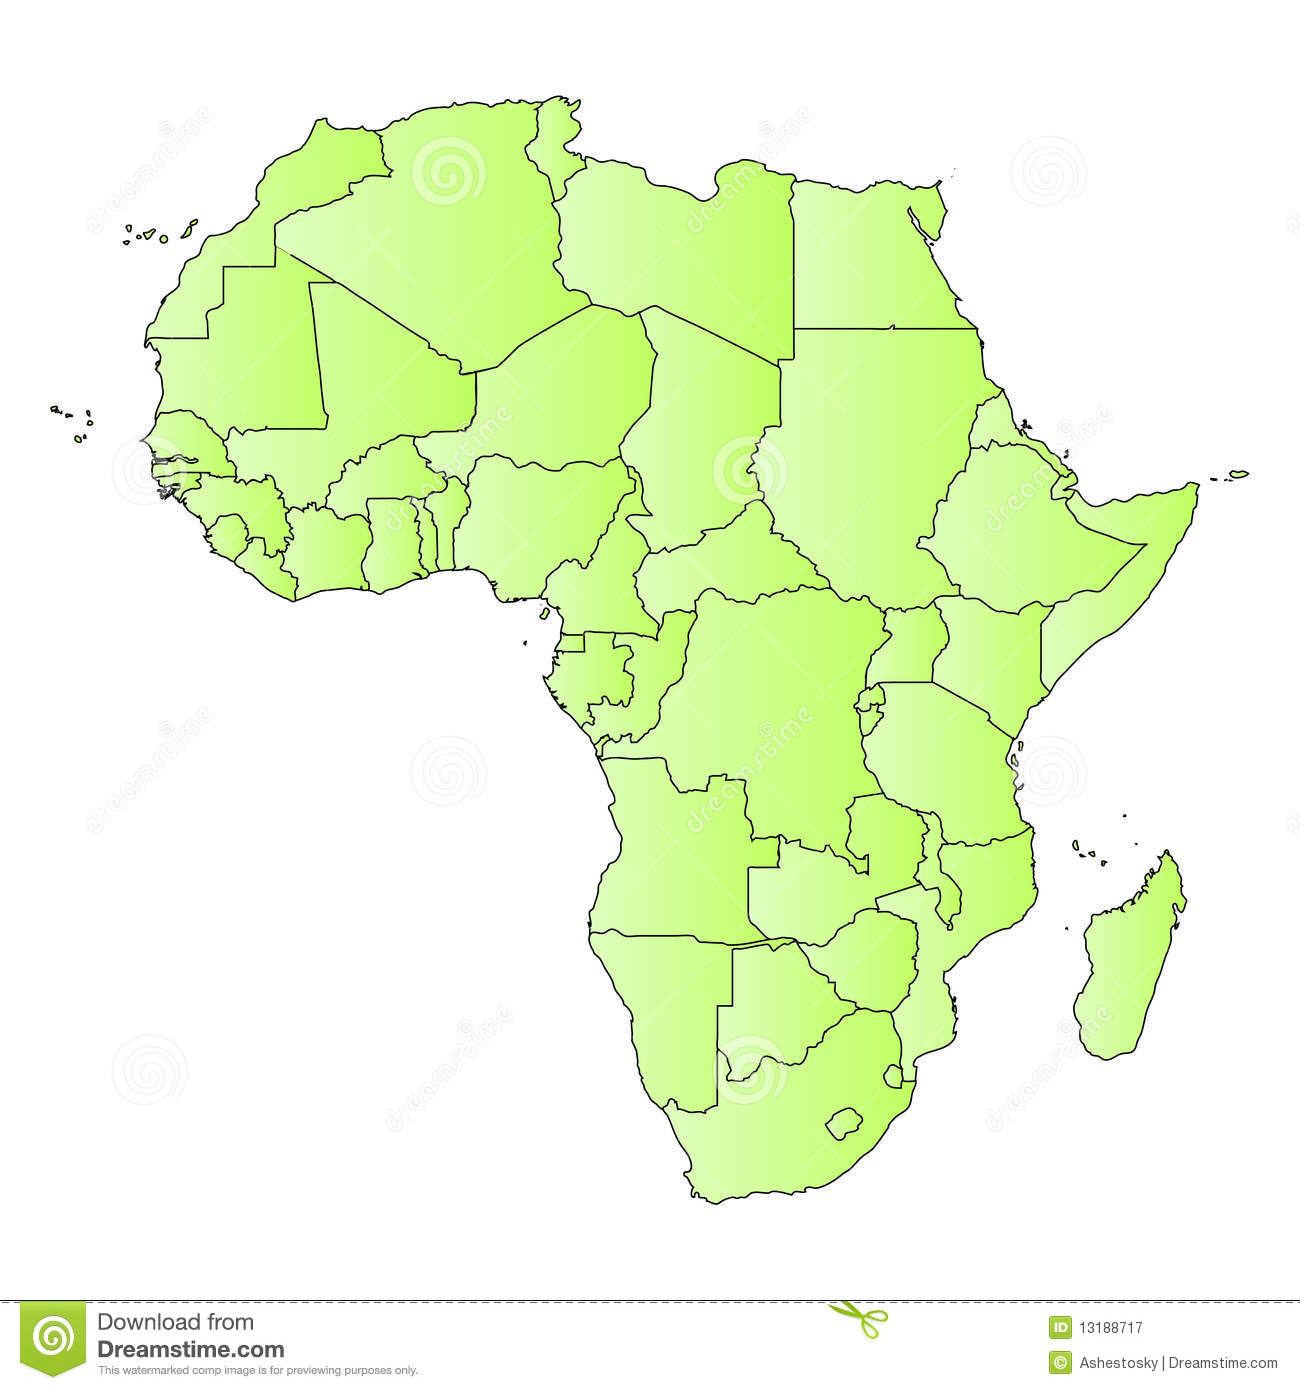 africa map outline of states image